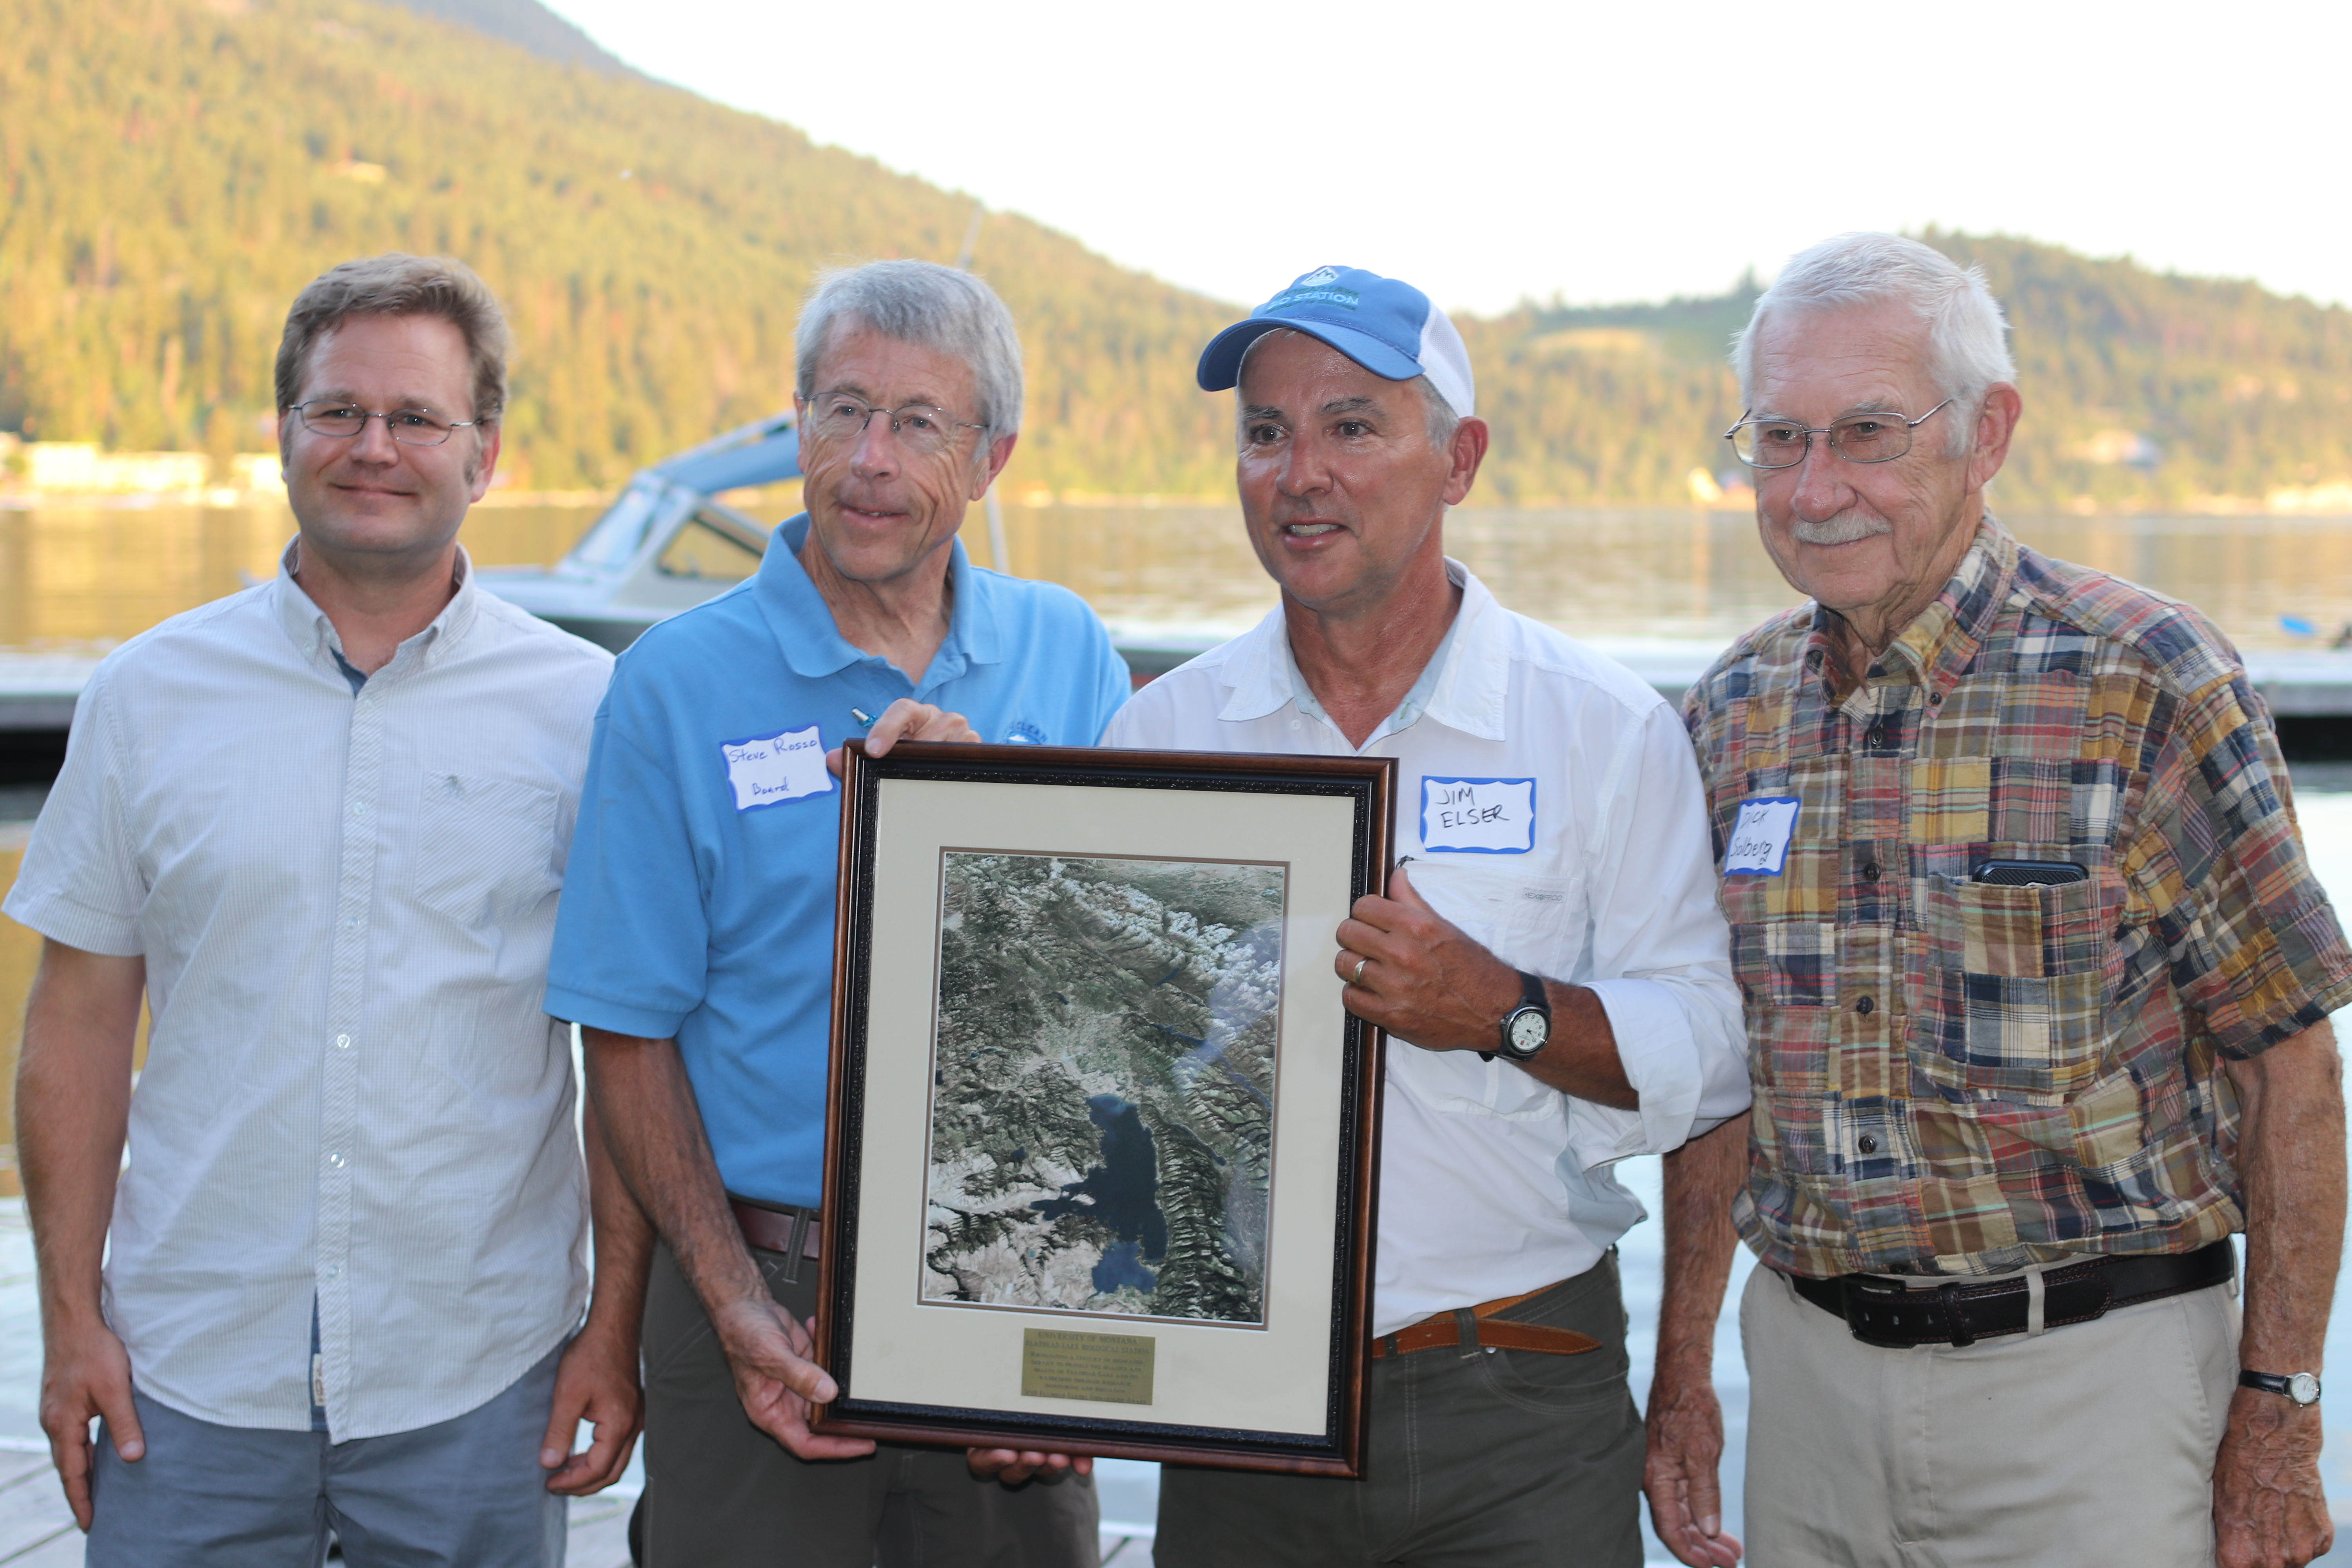 Flathead Lakers president Steve Rosso presents the 2018 Flathead Lakers Stewardship award to FLBS Assistant Director Tom Bansak, FLBS Director Jim Elser, and former FLBS Director Dick Solberg